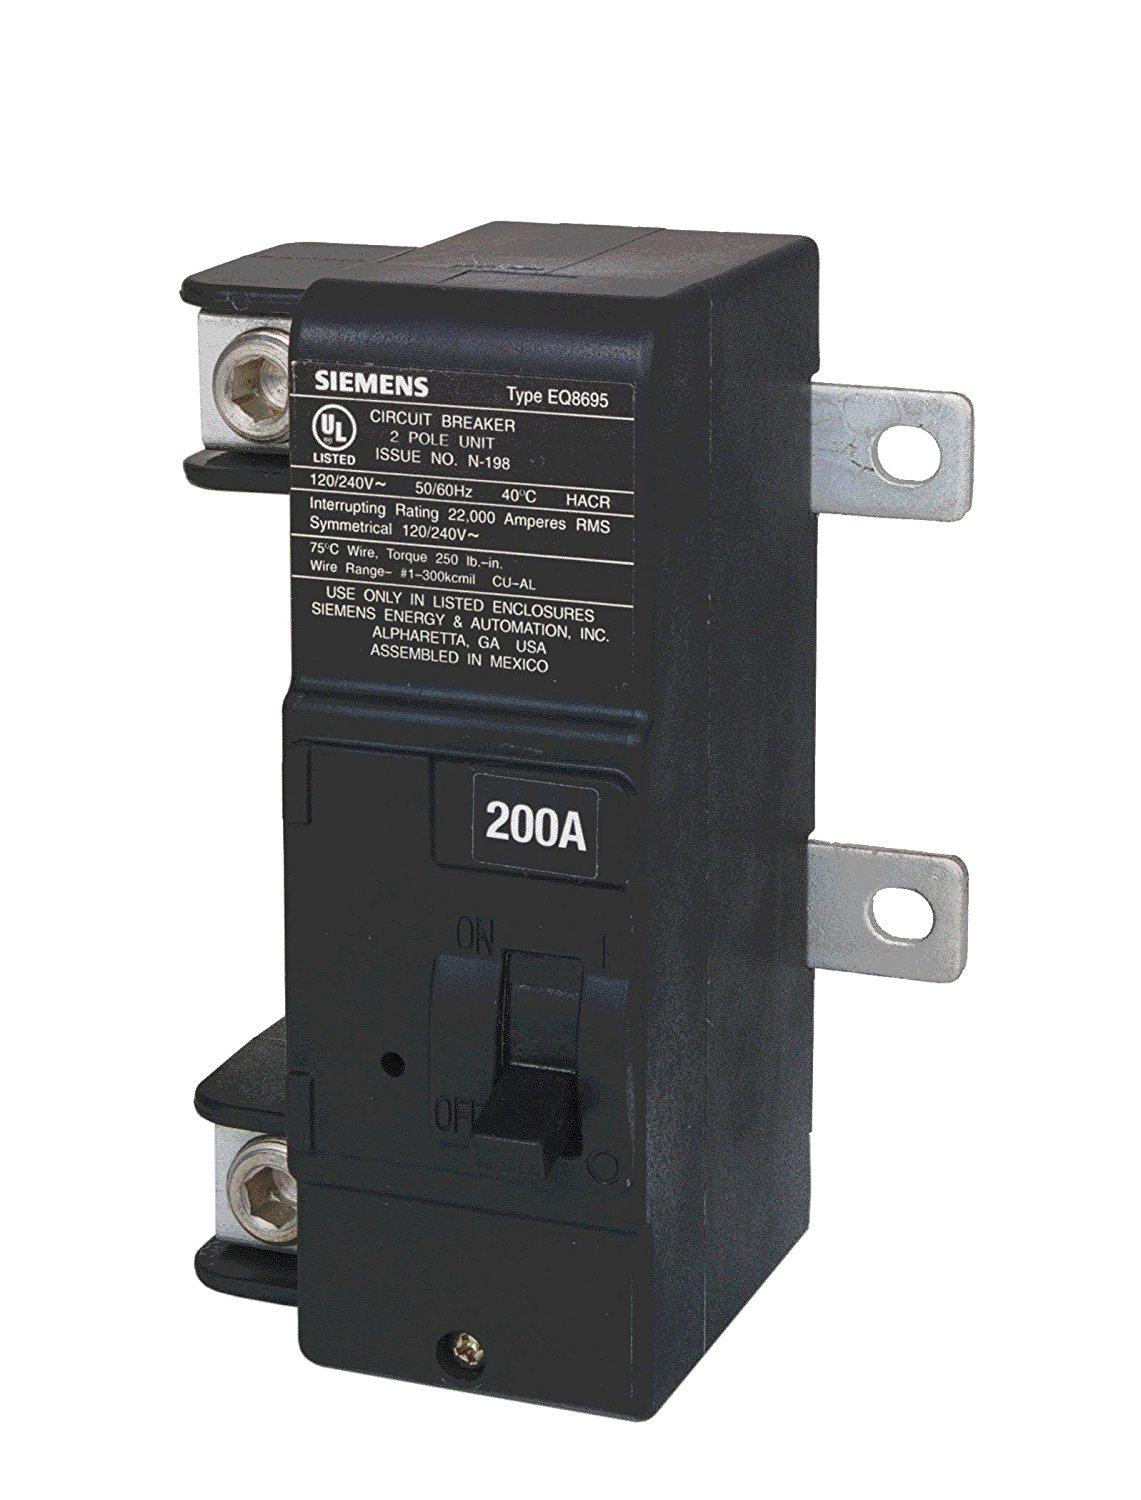 Siemens Mbk200a 200 Amp Main Circuit Breaker For Use In Ultimate Outdoor Service Panel Wiring Diagram Type Load Centers